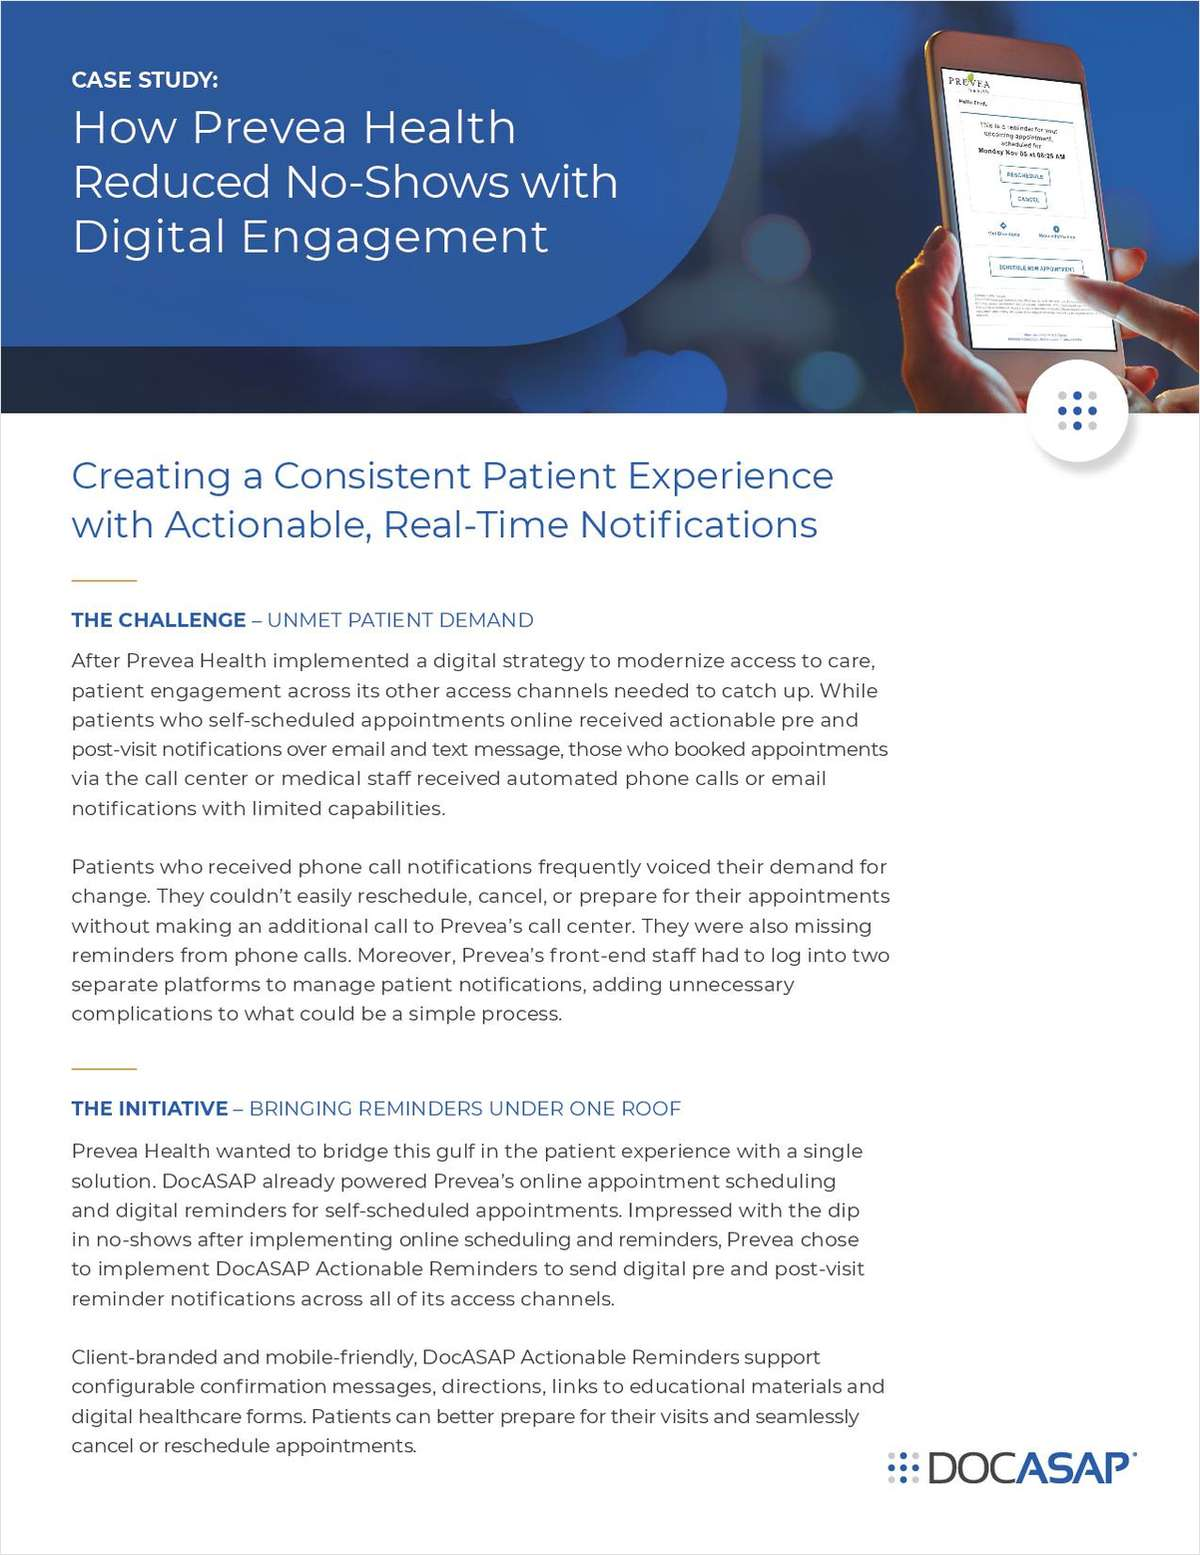 How Prevea Health Reduced No-Shows with Digital Engagement